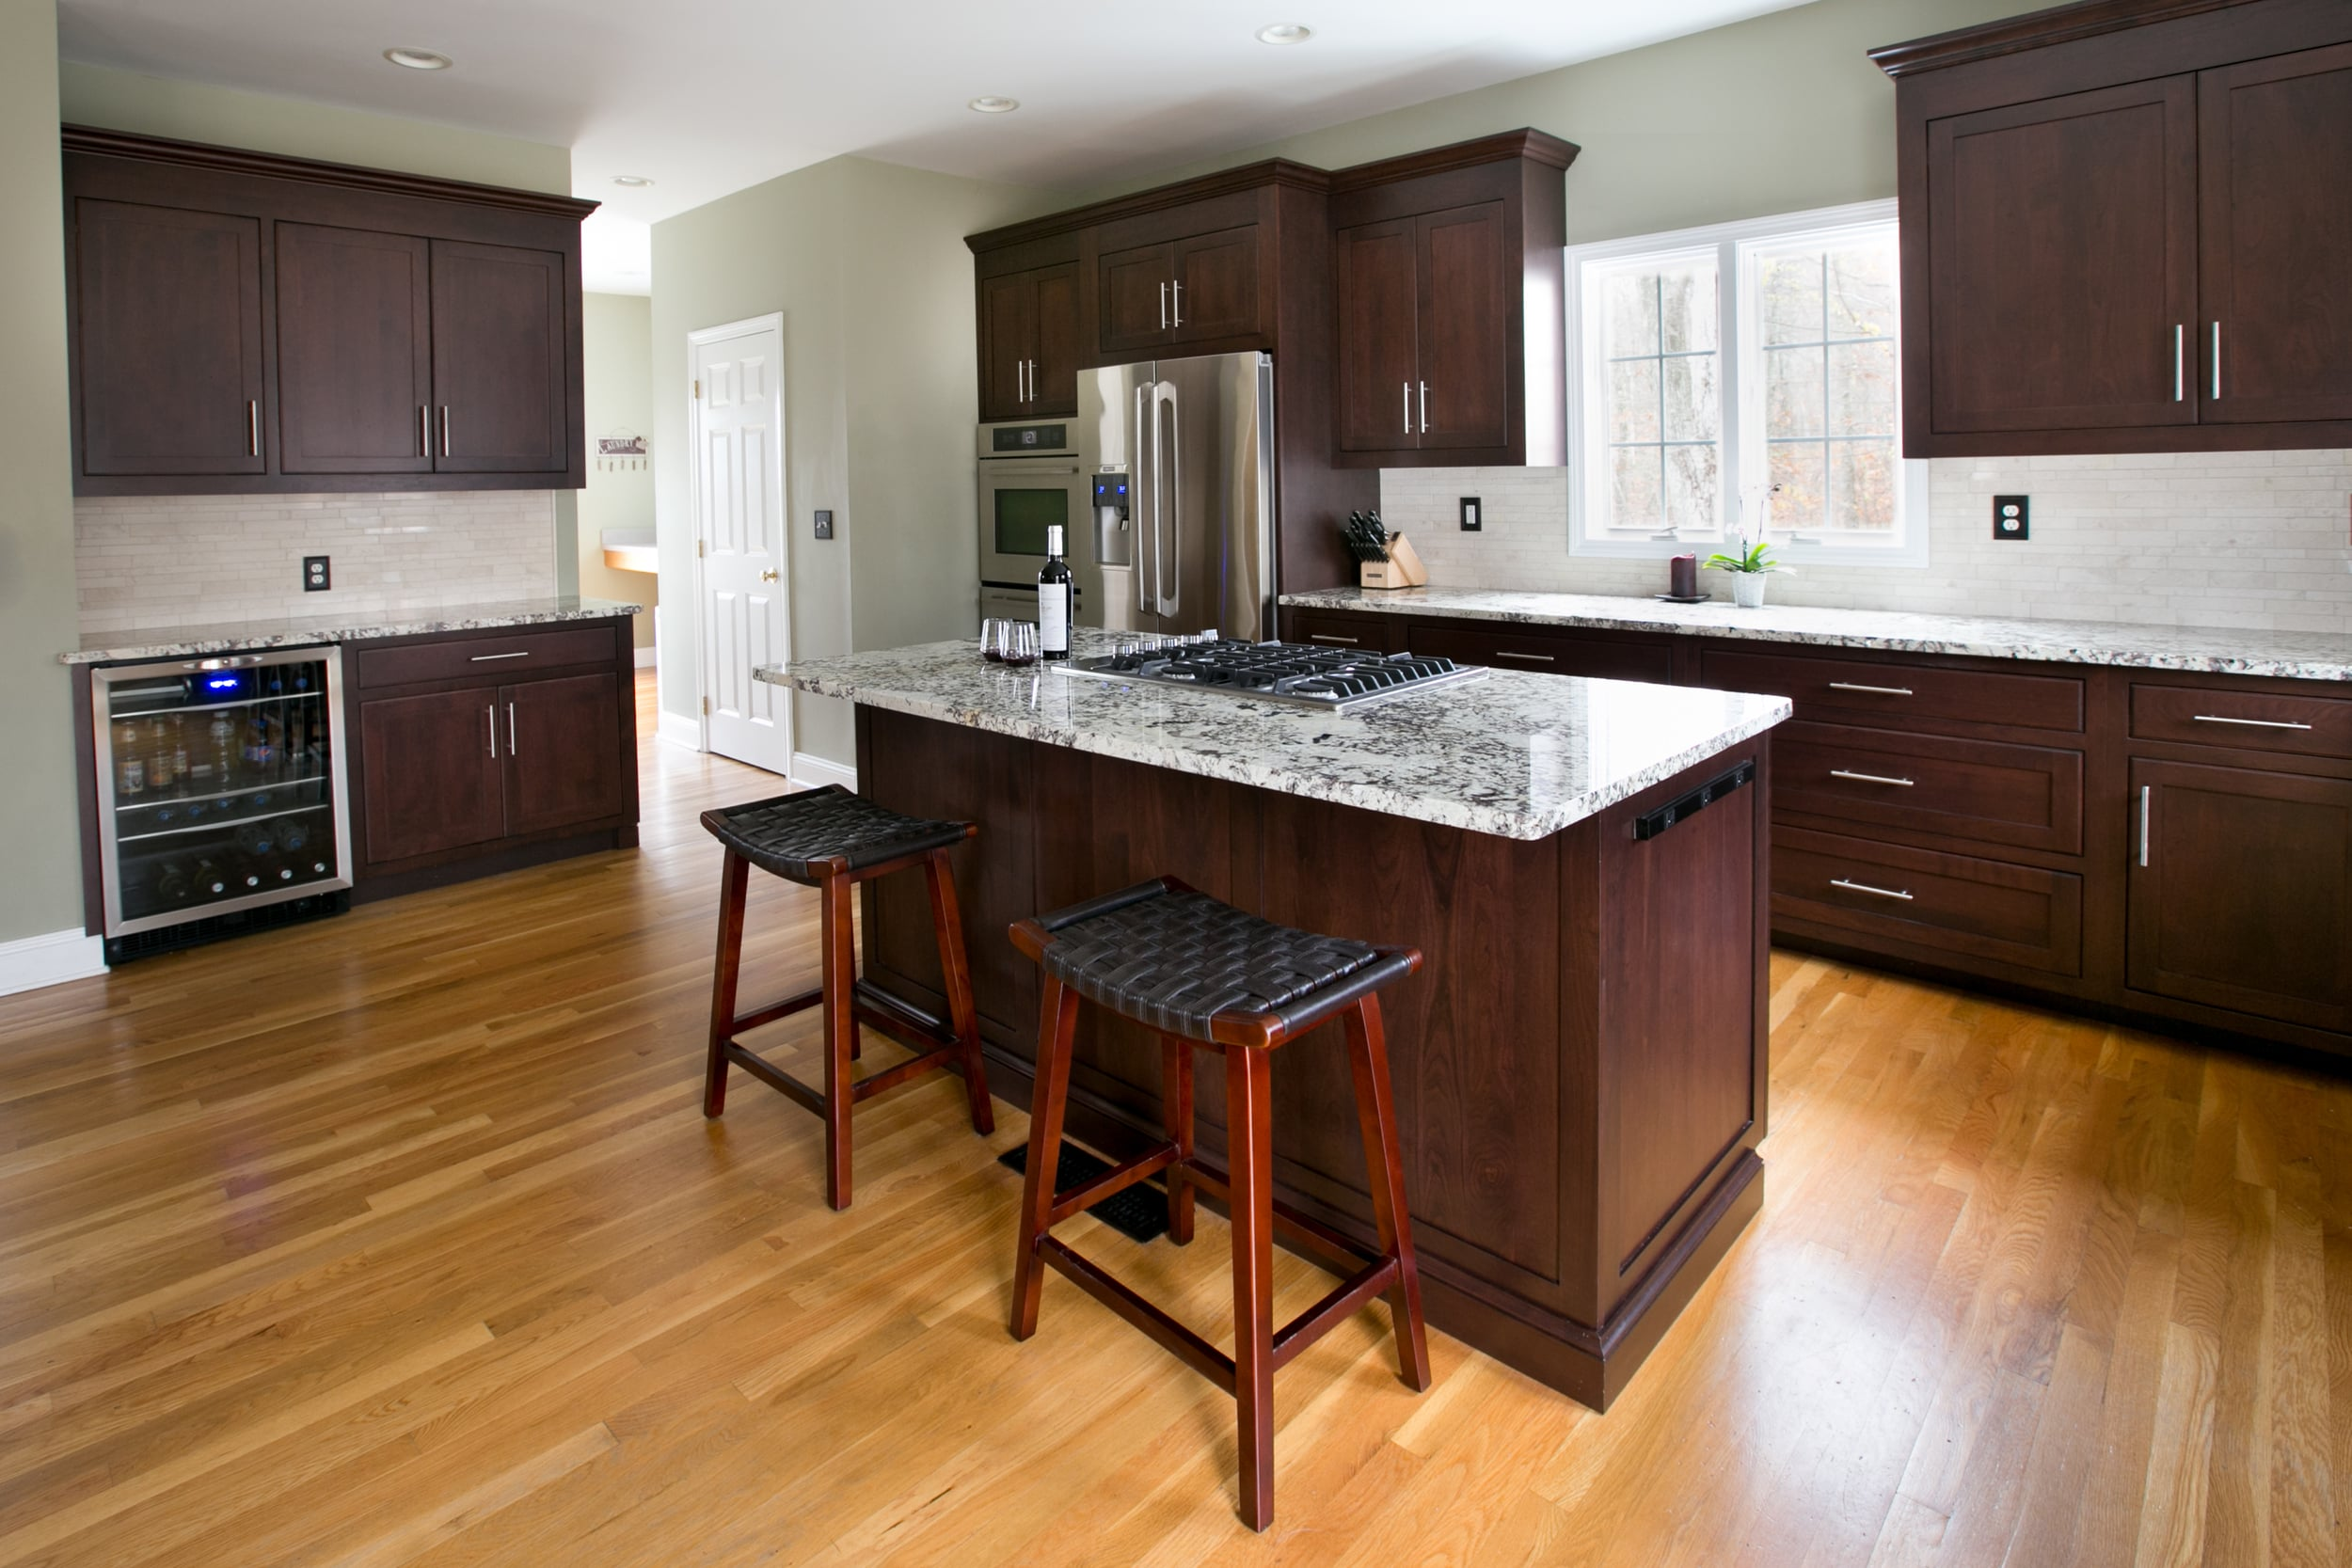 ackleycabinet cabinets kitchen custom cabinets kitchen design kitchen remodeling ct